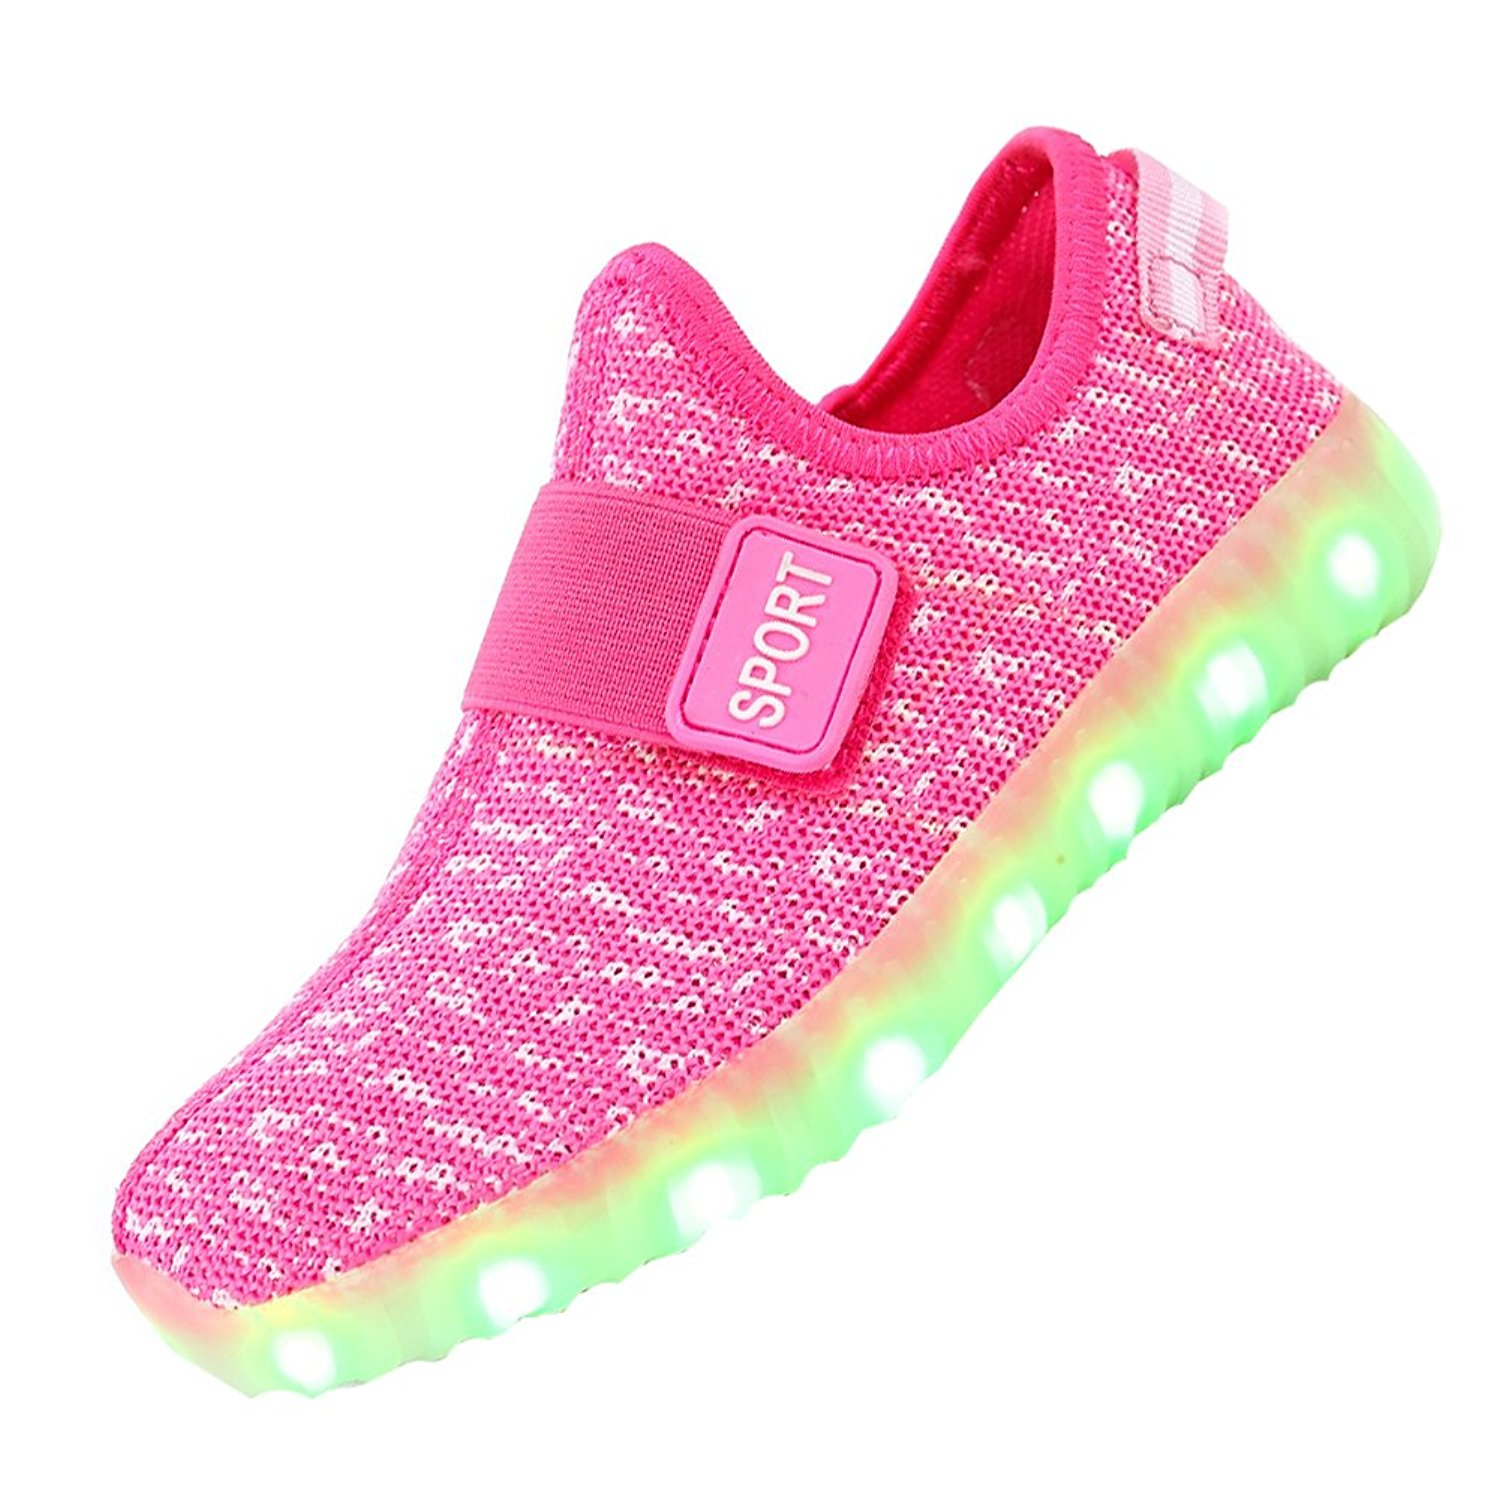 Boys Girls Breathable LED Light Up Shoes Flashing LED Sneakers Luminous Kids Shoes with Light Glowing Sneakers Children Pink